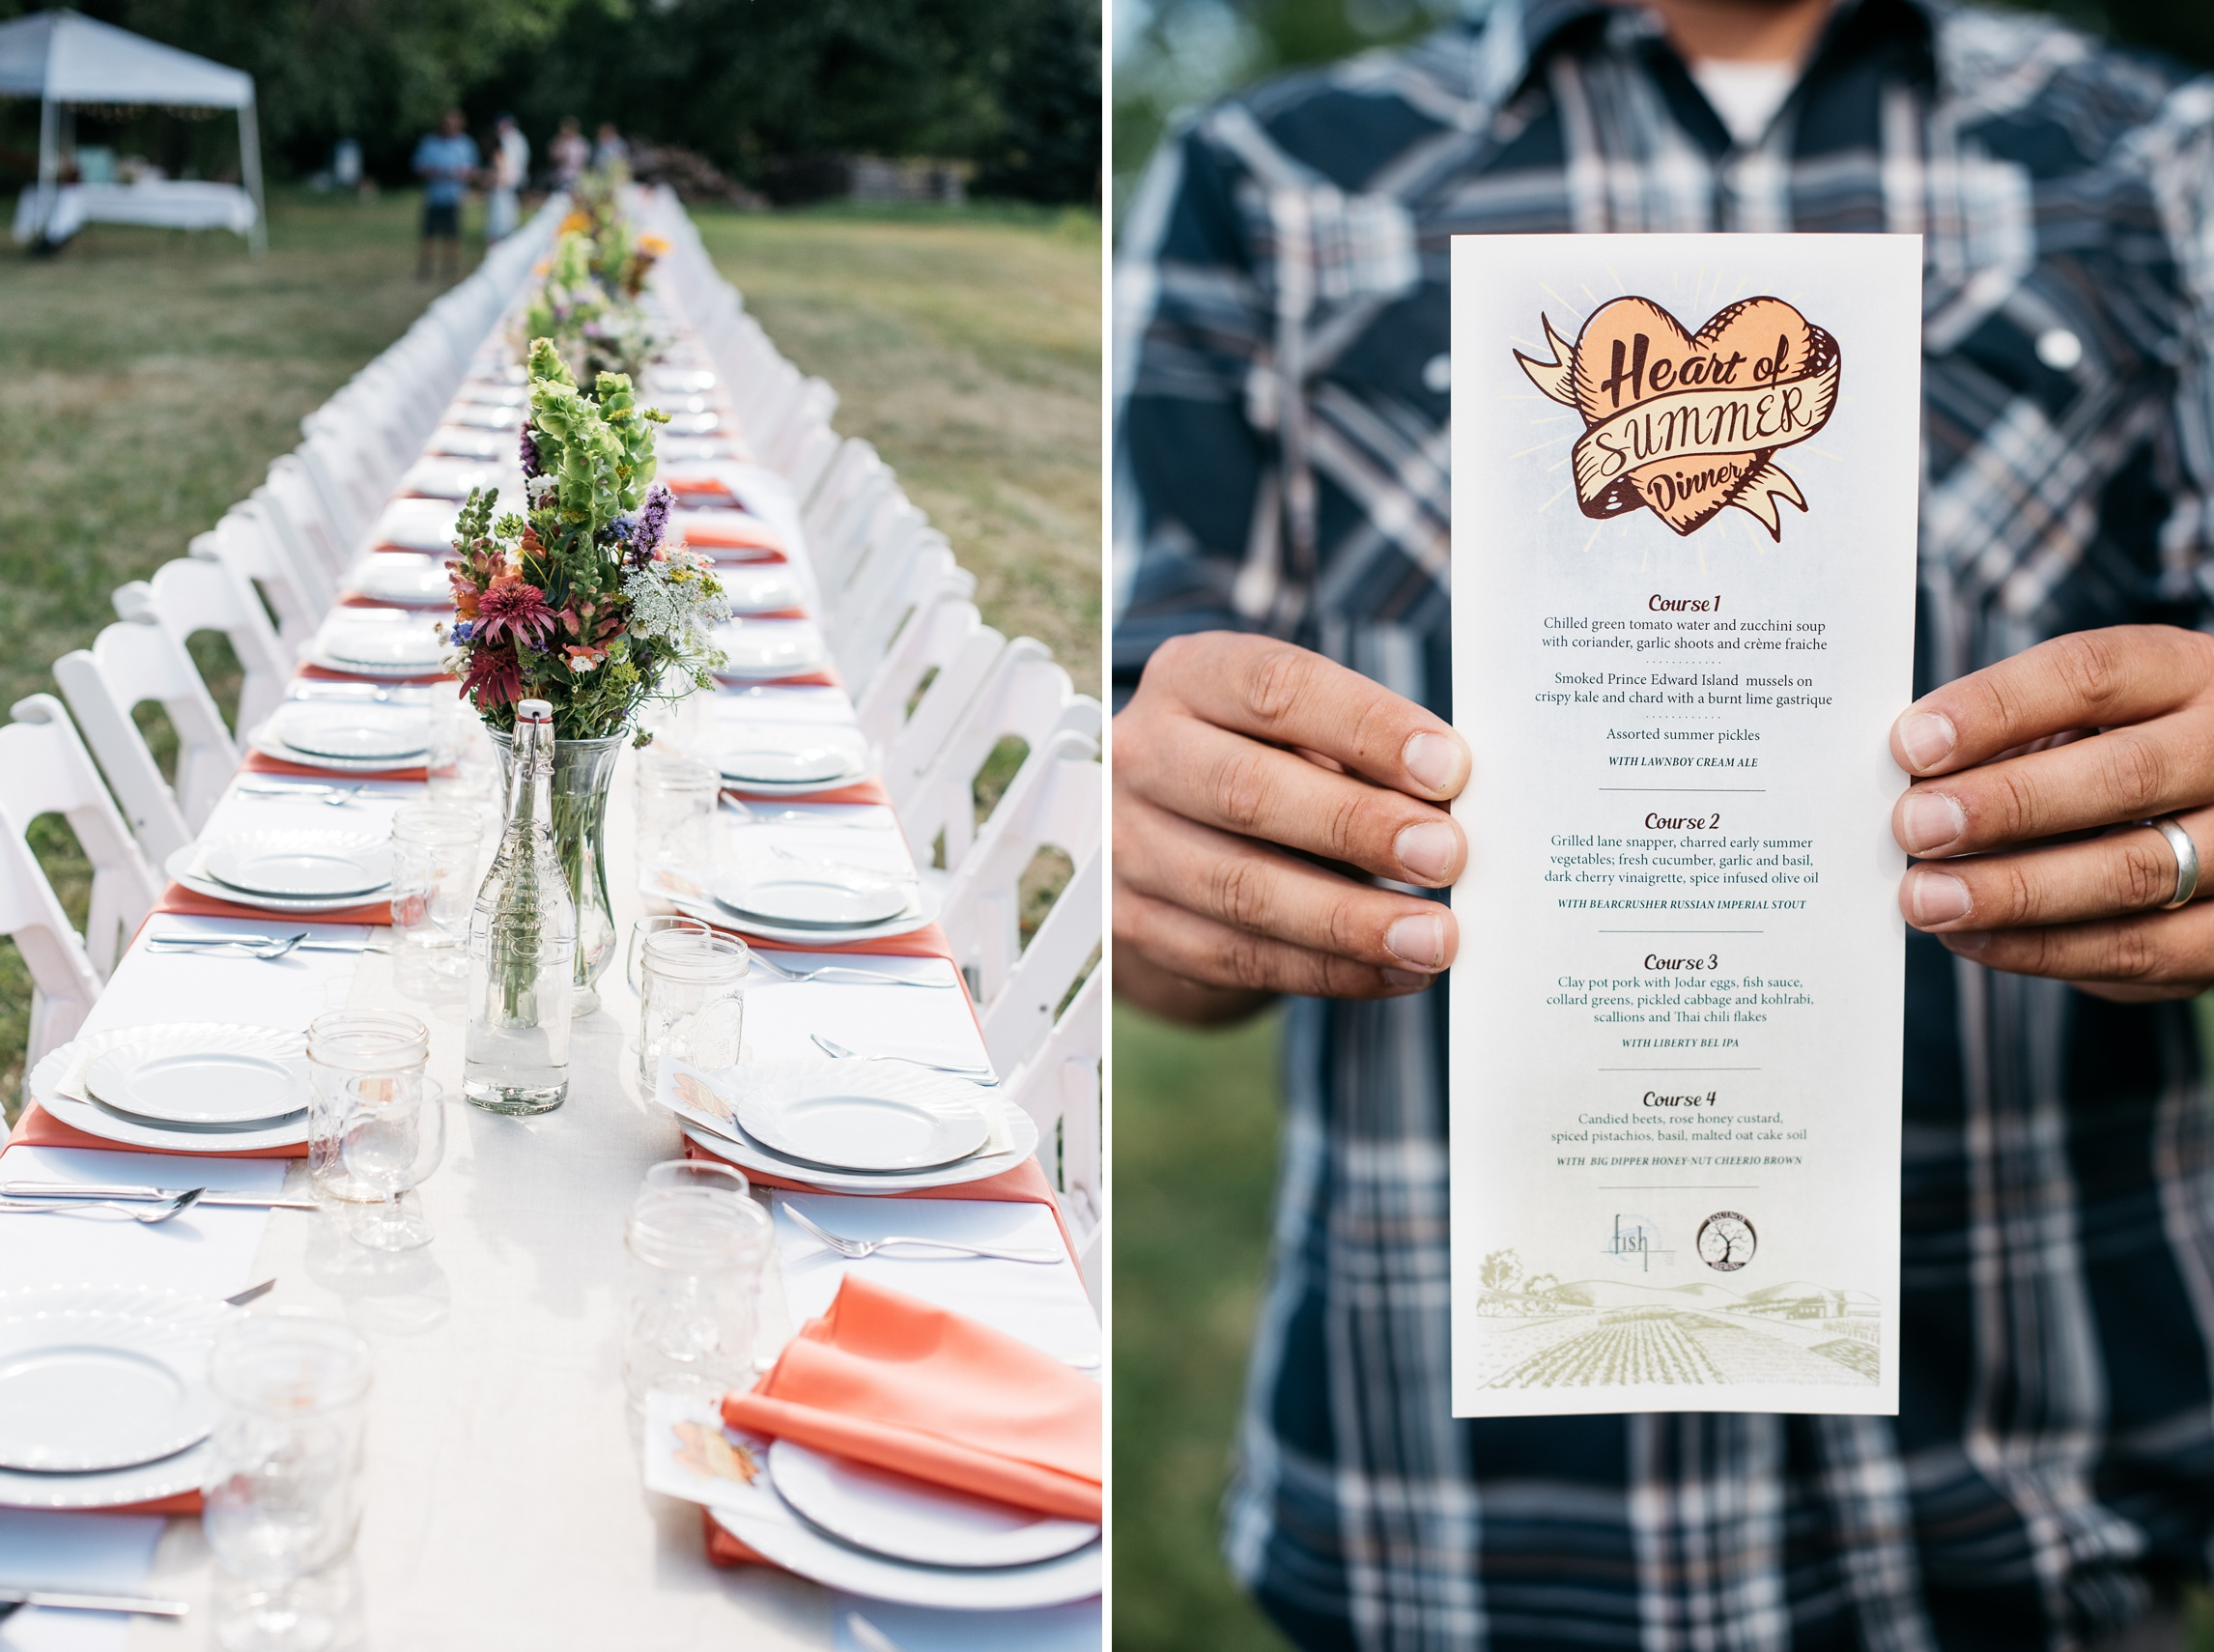 The table and the menu from the Fortified Collaborations Heart of Summer Farm Dinner at Happy Heart Farm in Fort Collins, Colorado. Event photography by Sonja Salzburg of Sonja K Photography.